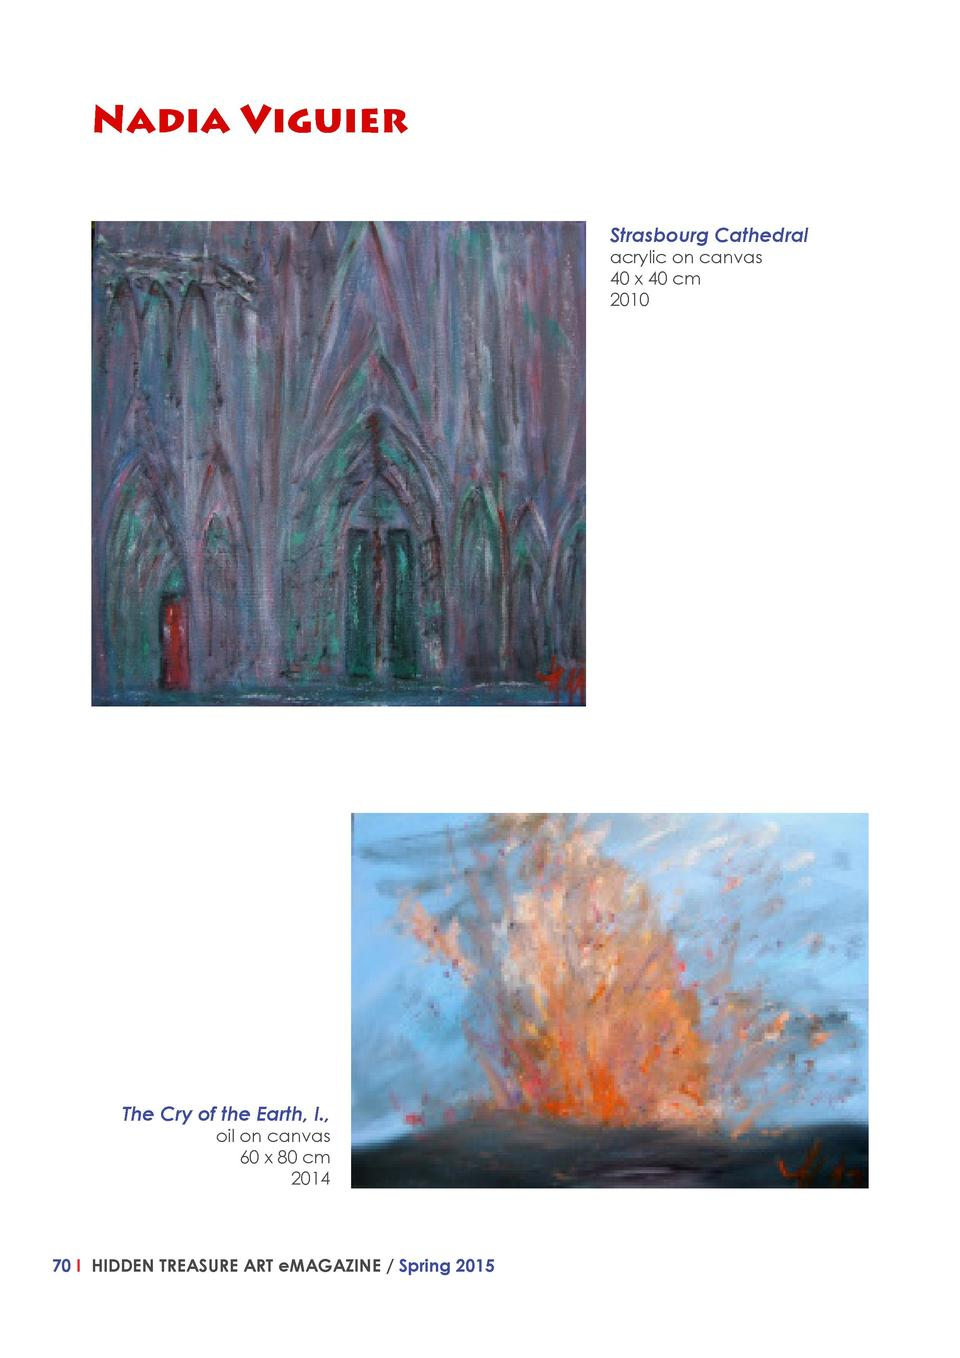 Nadia Viguier Strasbourg Cathedral acrylic on canvas 40 x 40 cm 2010  The Cry of the Earth, I., oil on canvas 60 x 80 cm 2...